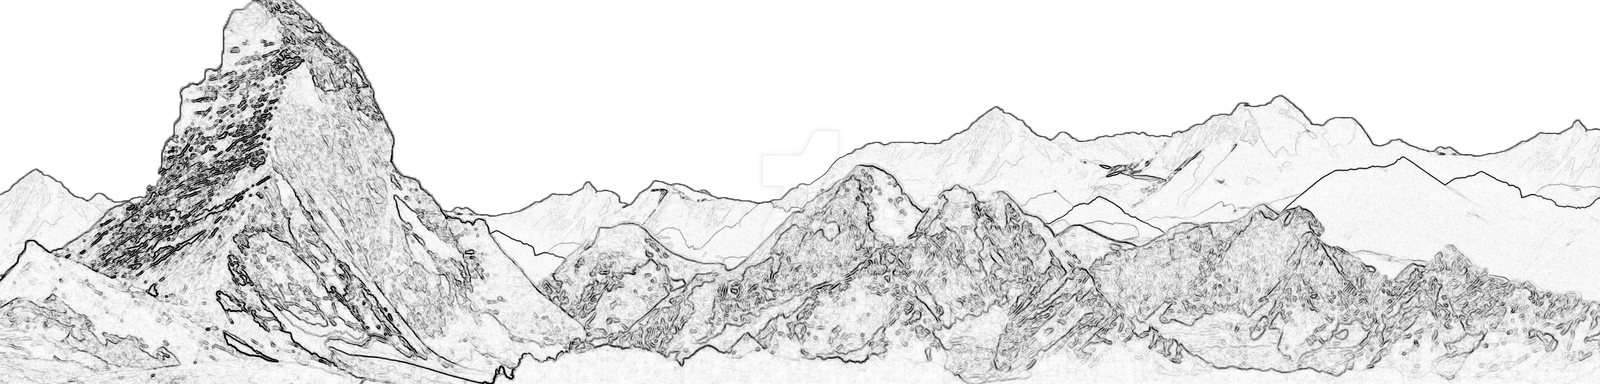 Line Art Mountains : Mountains lineart by cookiegirl on deviantart